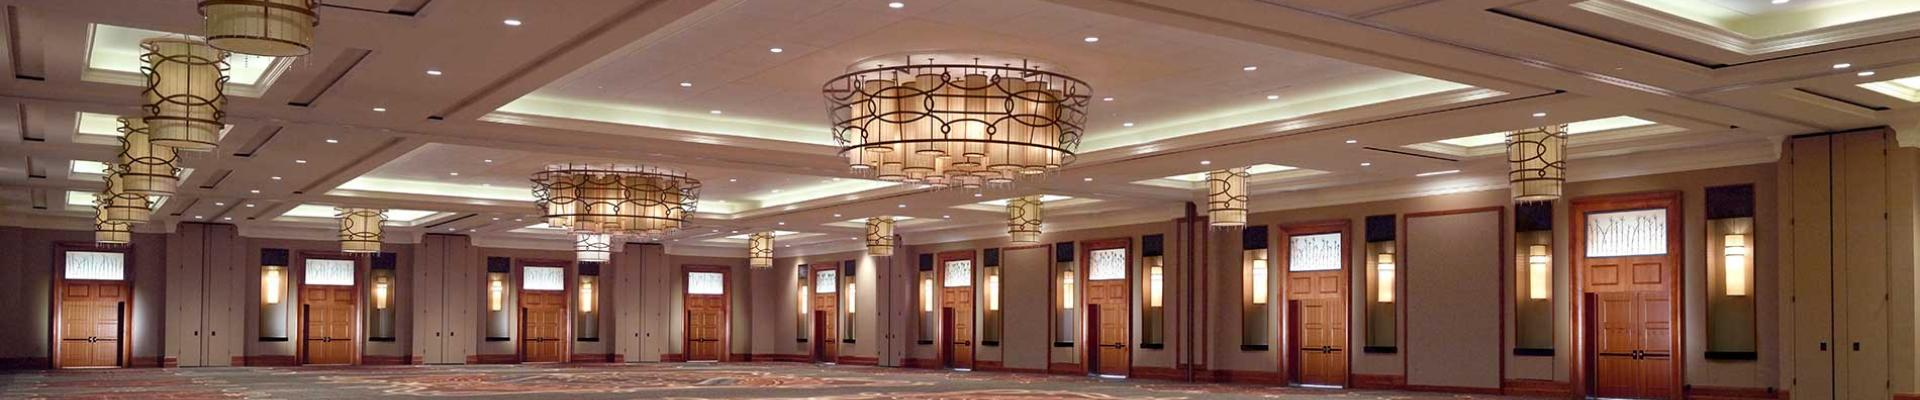 Exhibits and Receptions in the Texas Ballroom